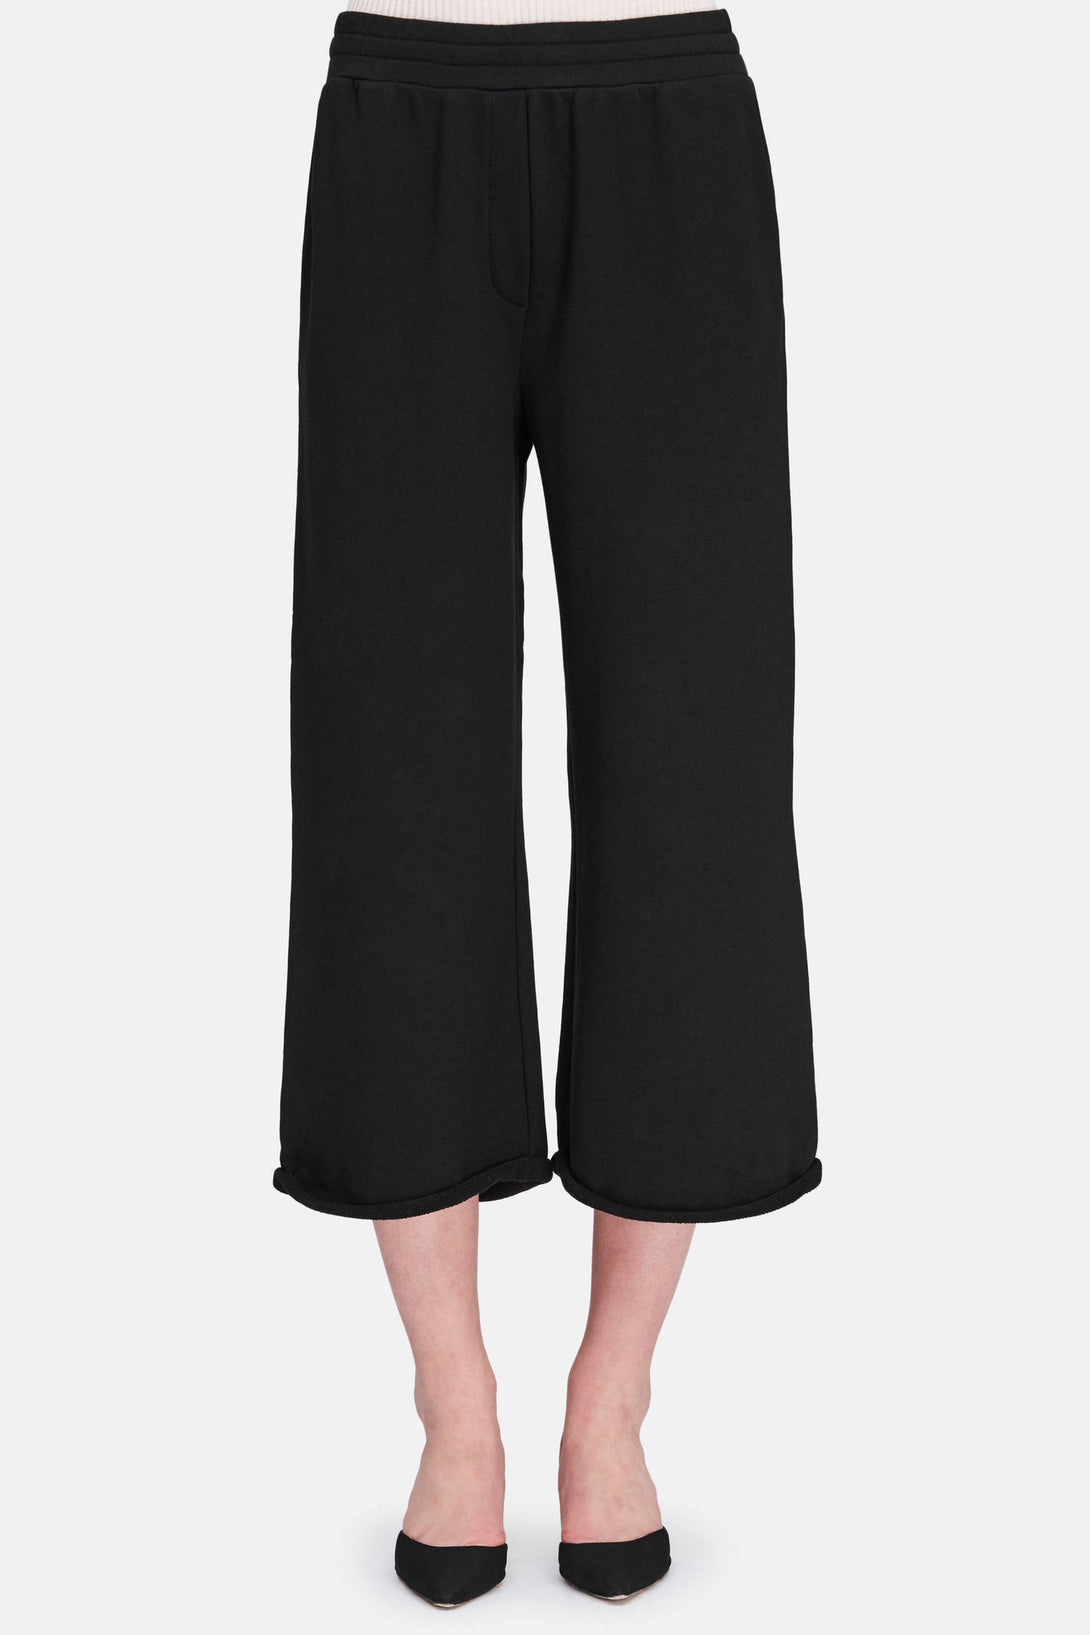 Cropped Wide Leg Sweatpants - Black